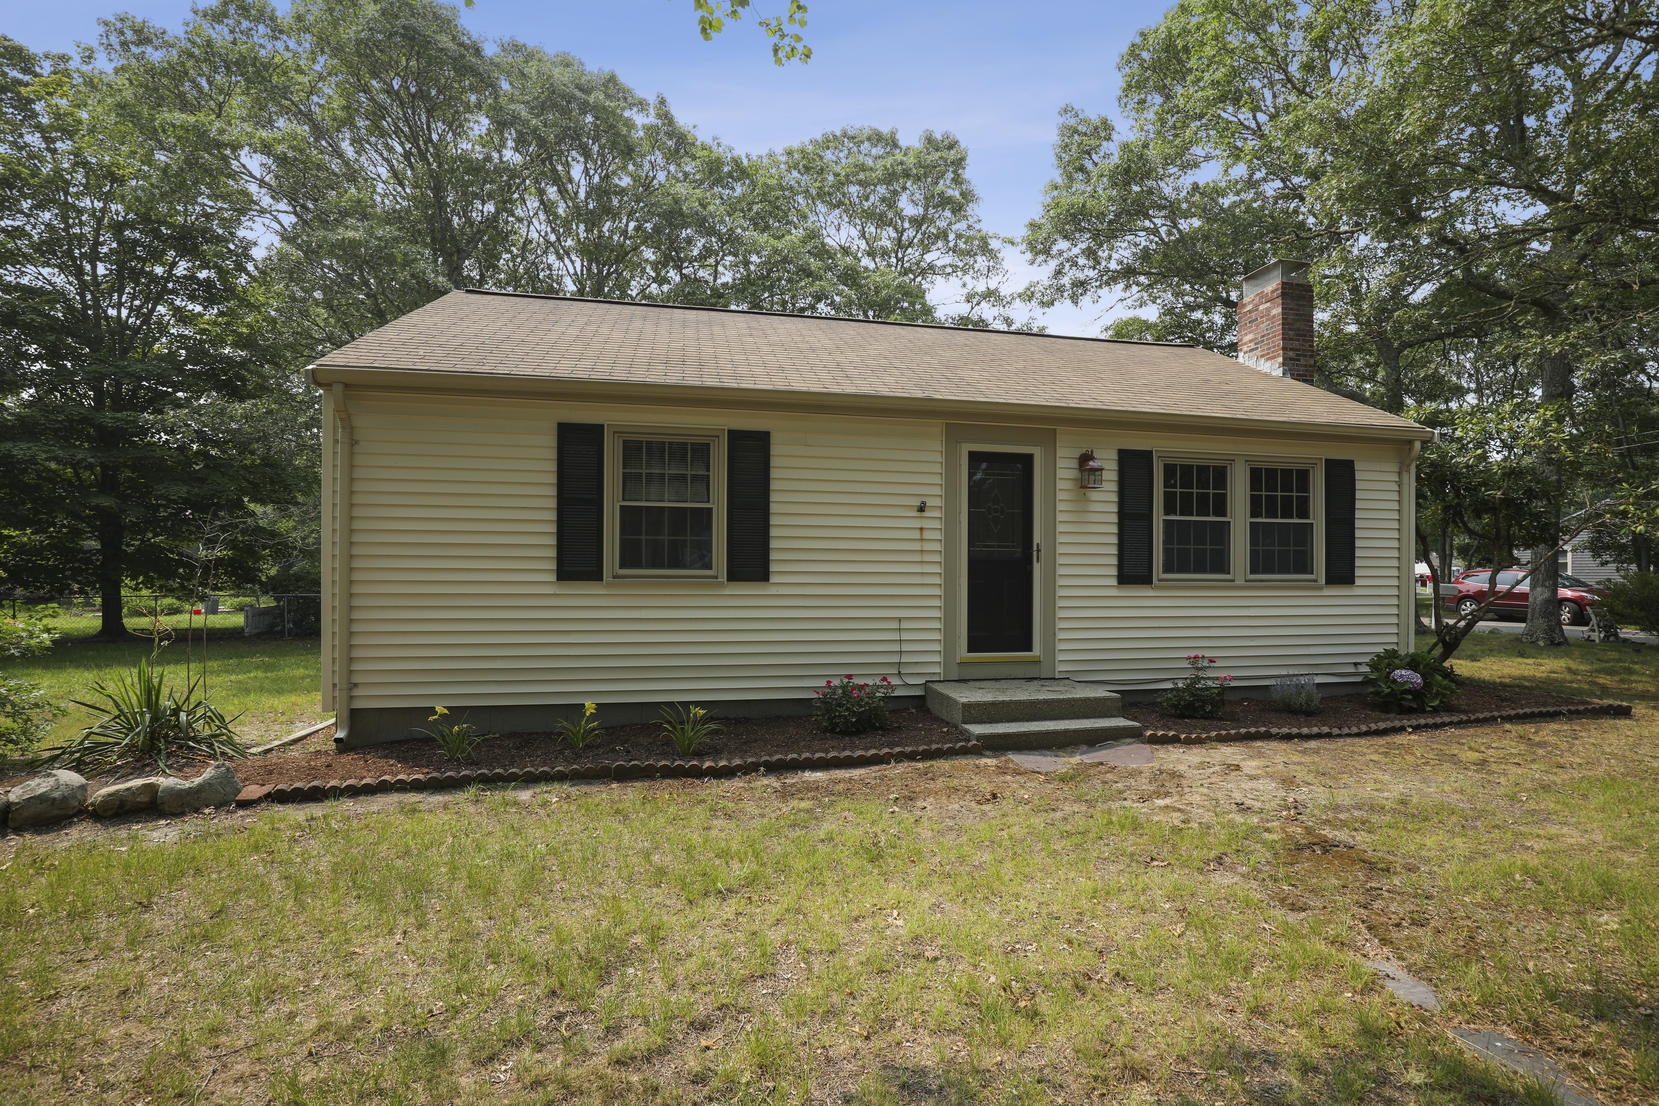 14 Clear Brook Rd West Yarmouth MA, 02673 details